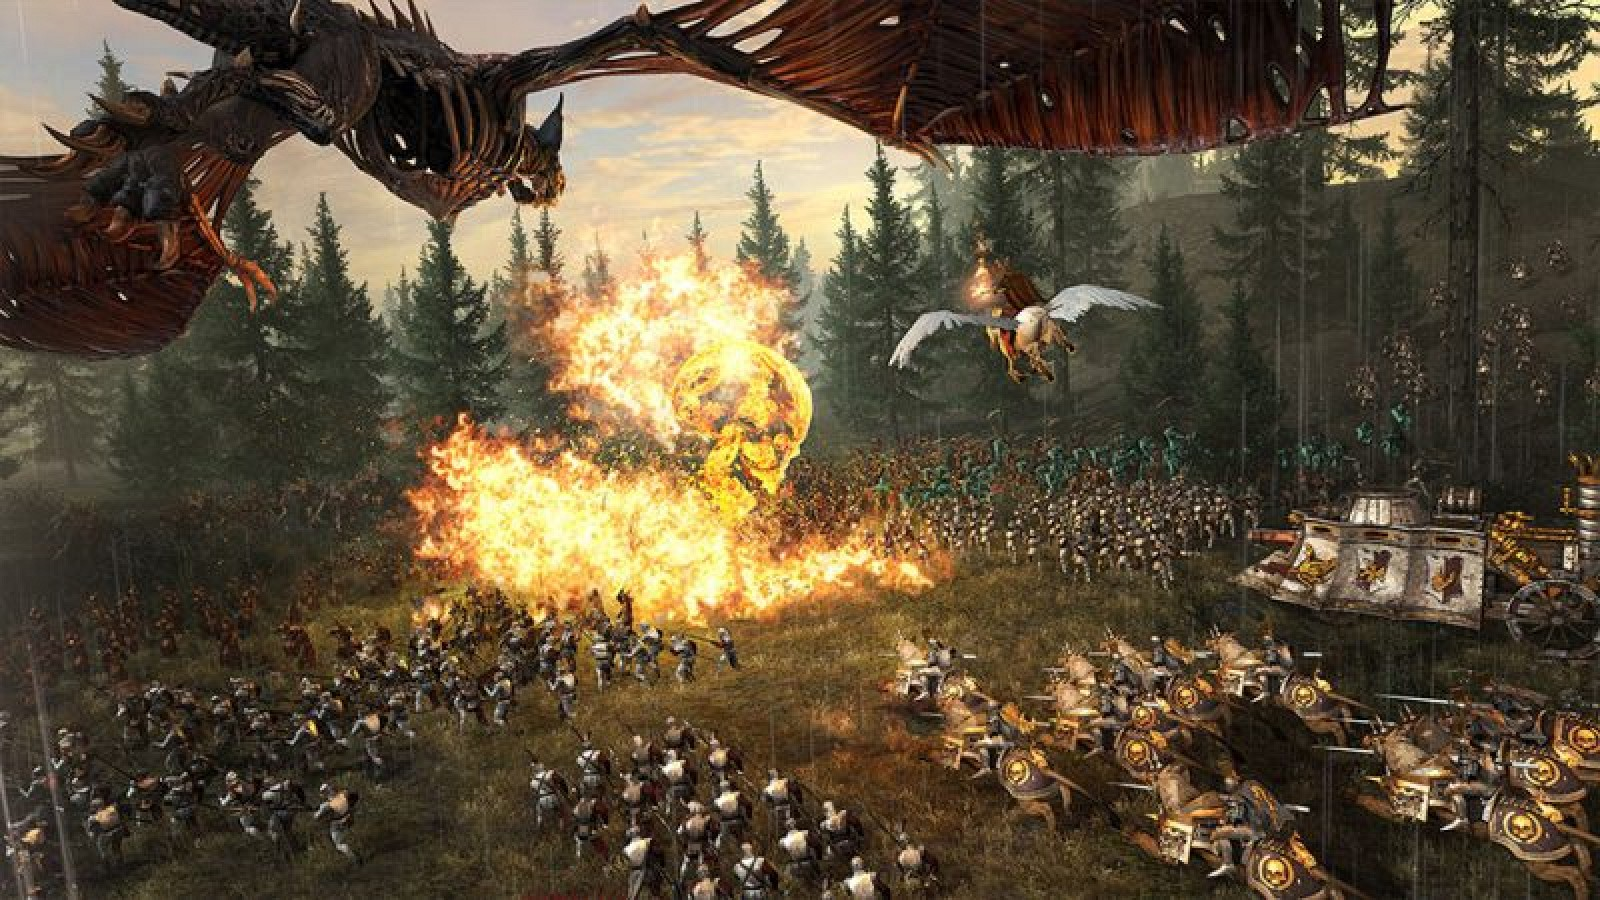 Feral Interactive to Release 'Total War: Warhammer' for Mac Next Week